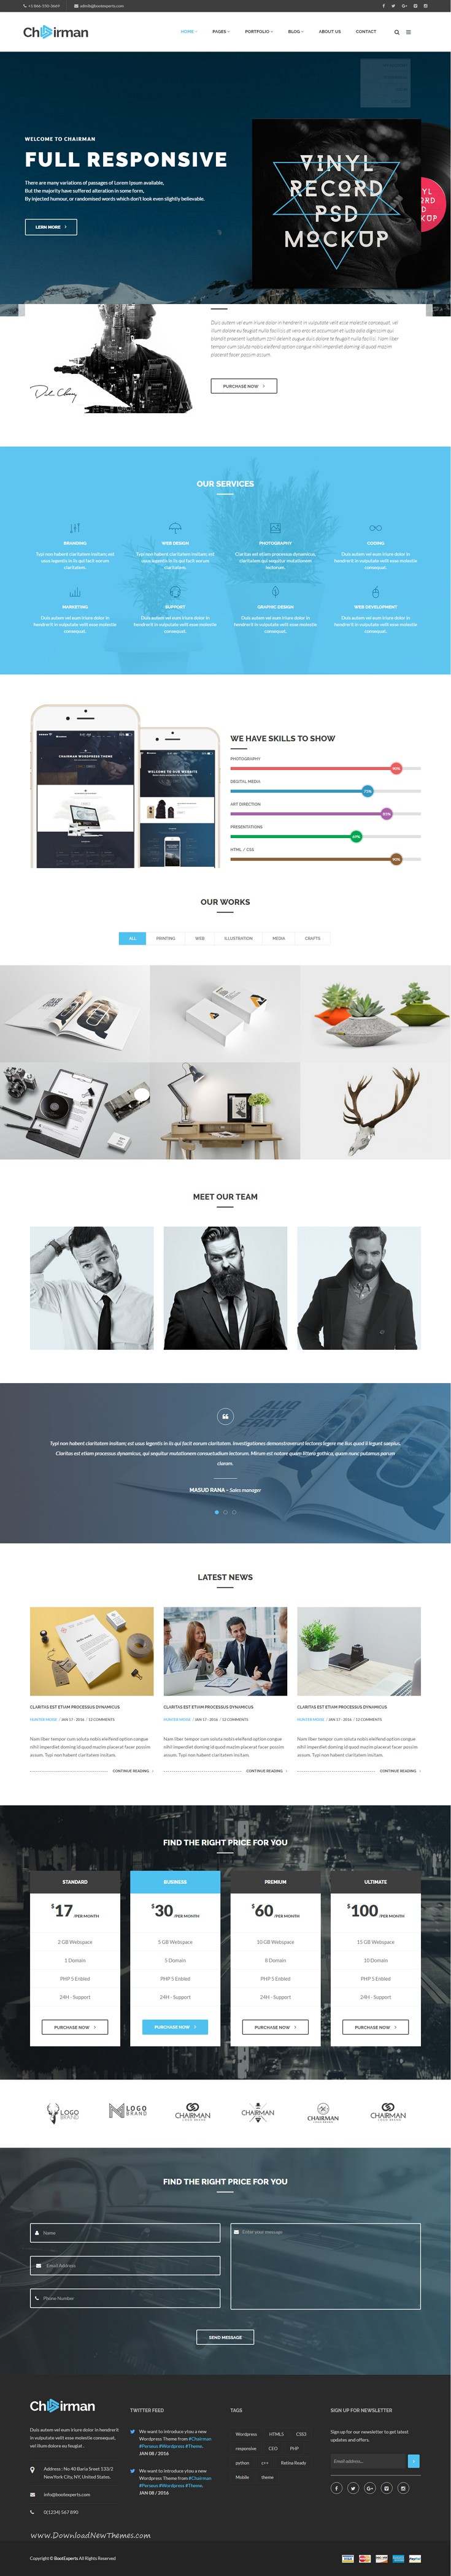 Chairman - Multi-Purpose HTML5 Template | Corporate website ...